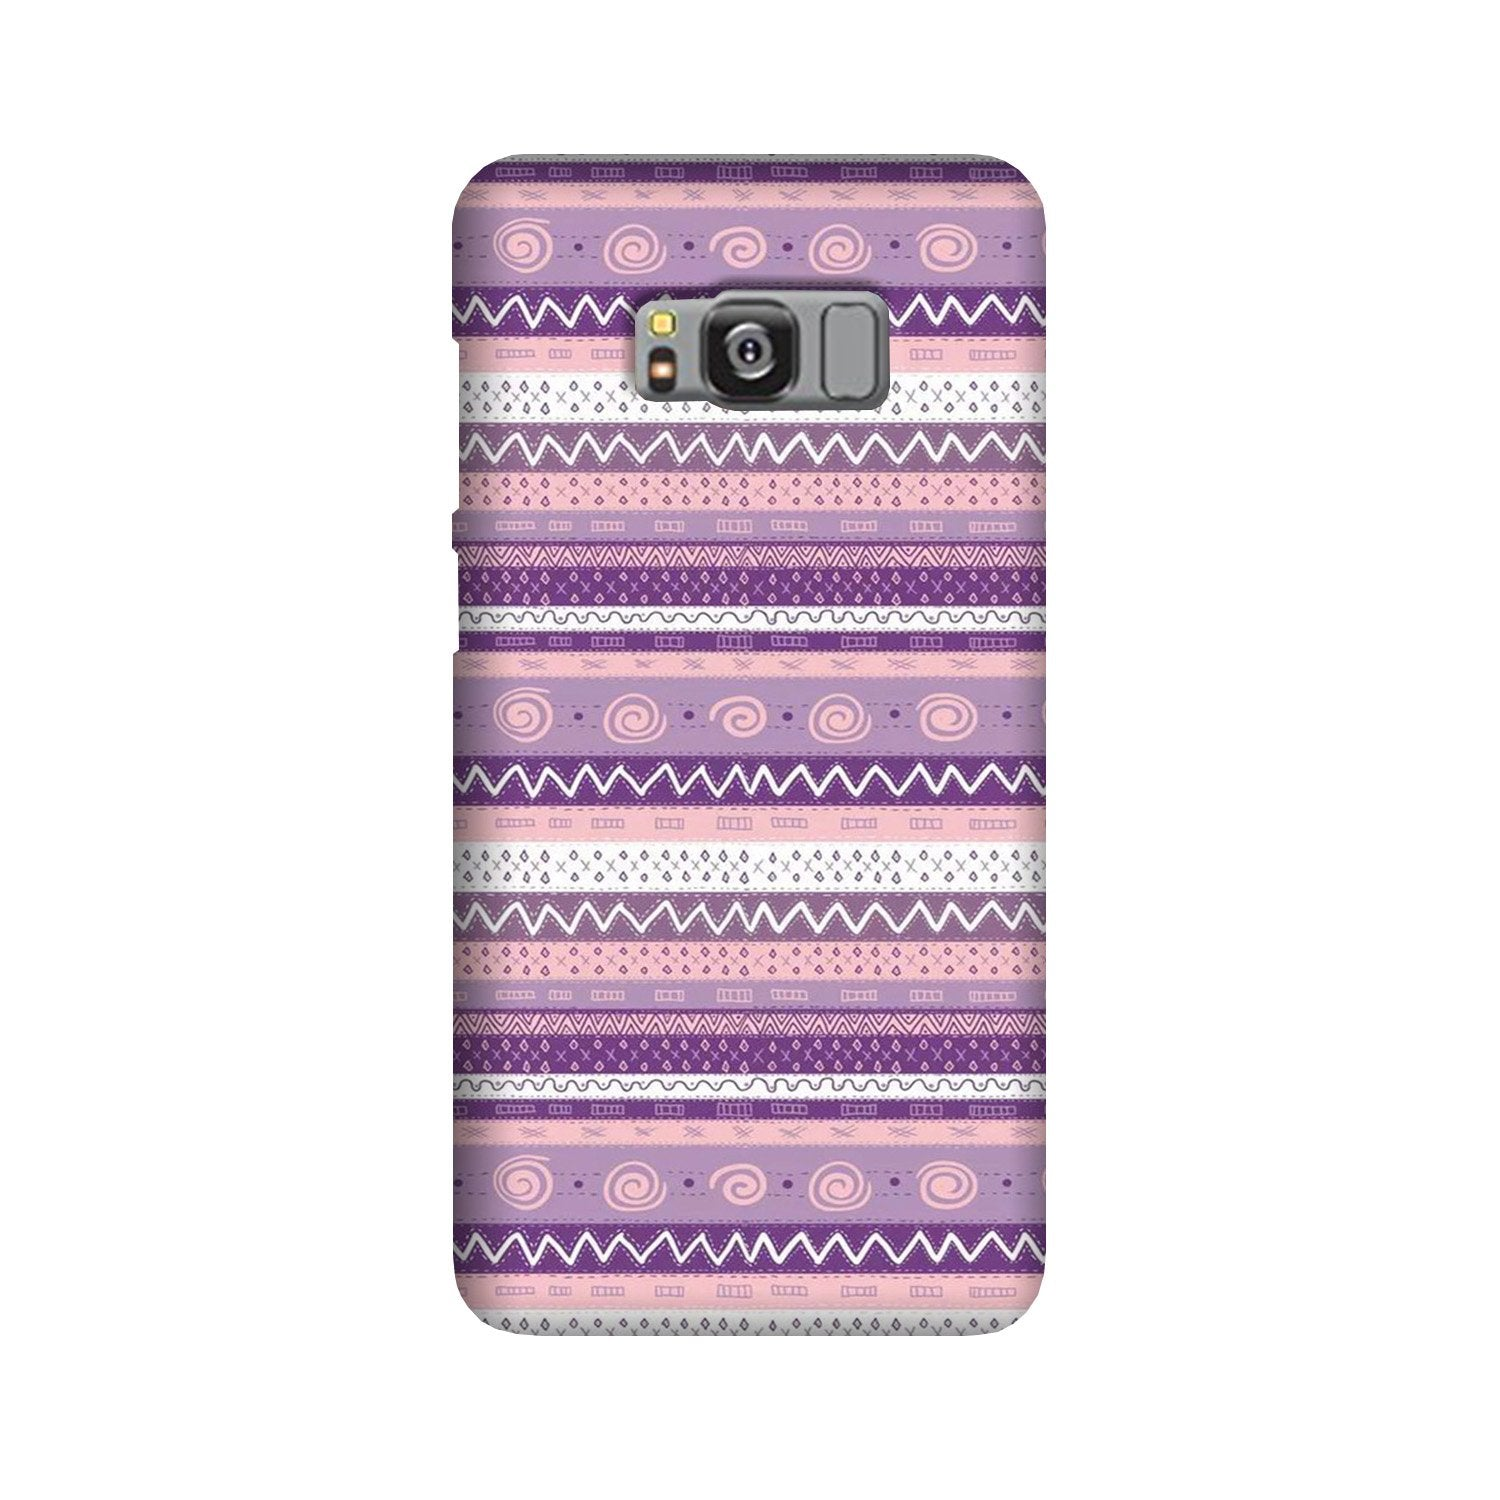 Zigzag line pattern3 Case for Galaxy S8 Plus